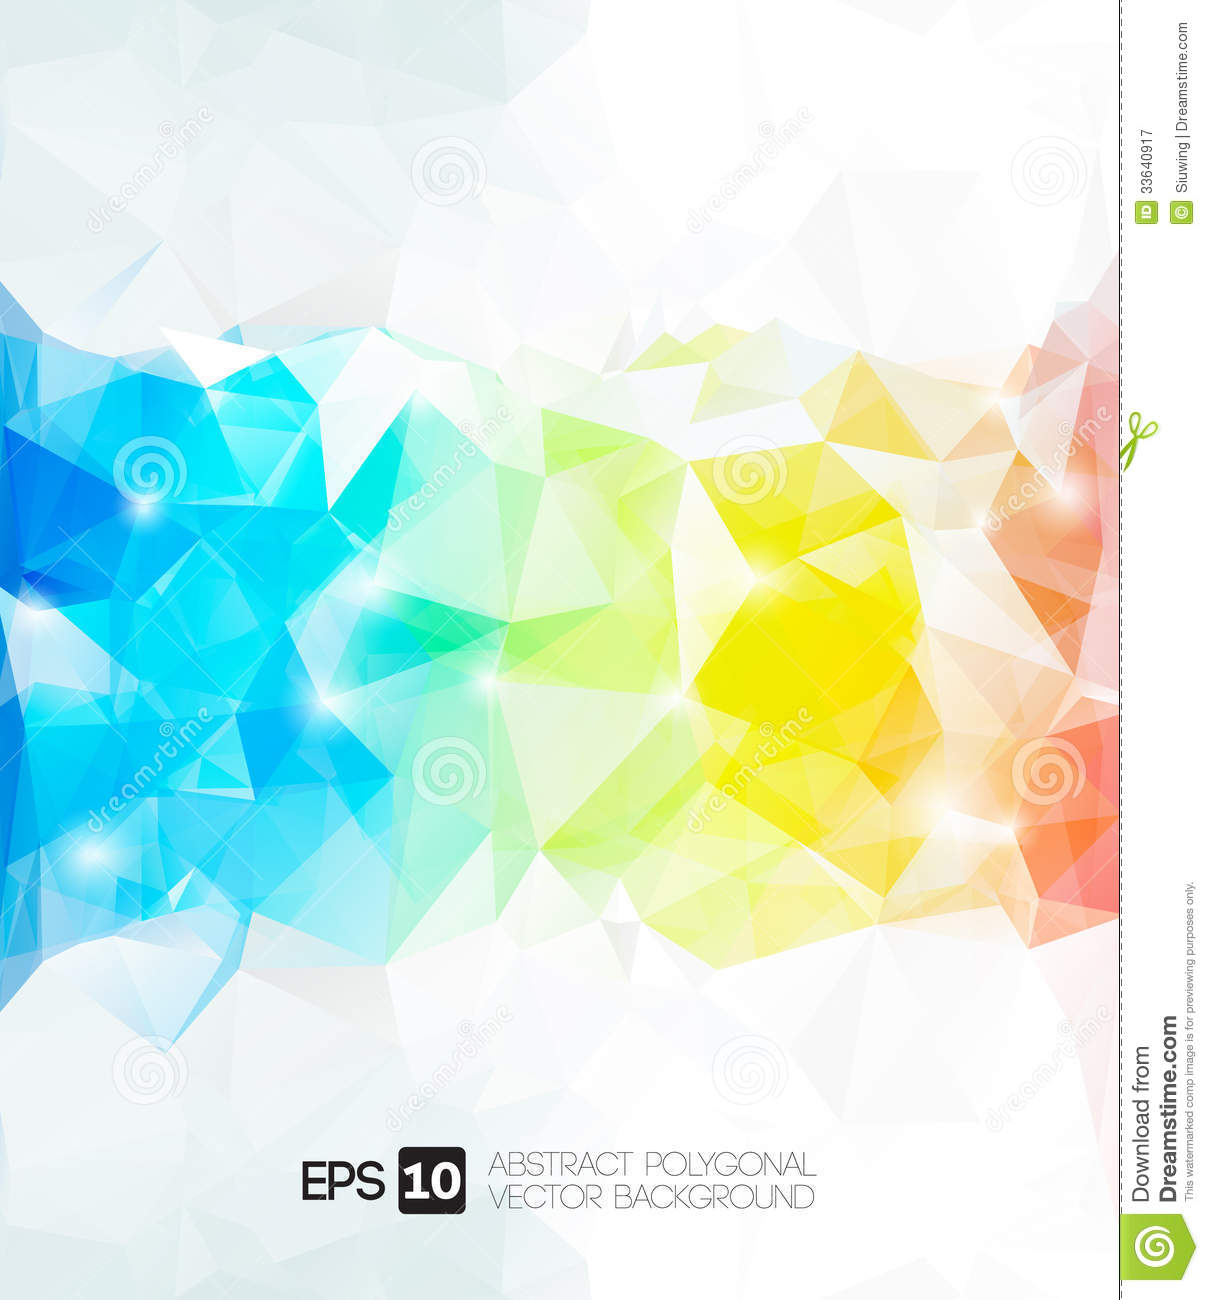 abstract polygonal colorful background - photo #30